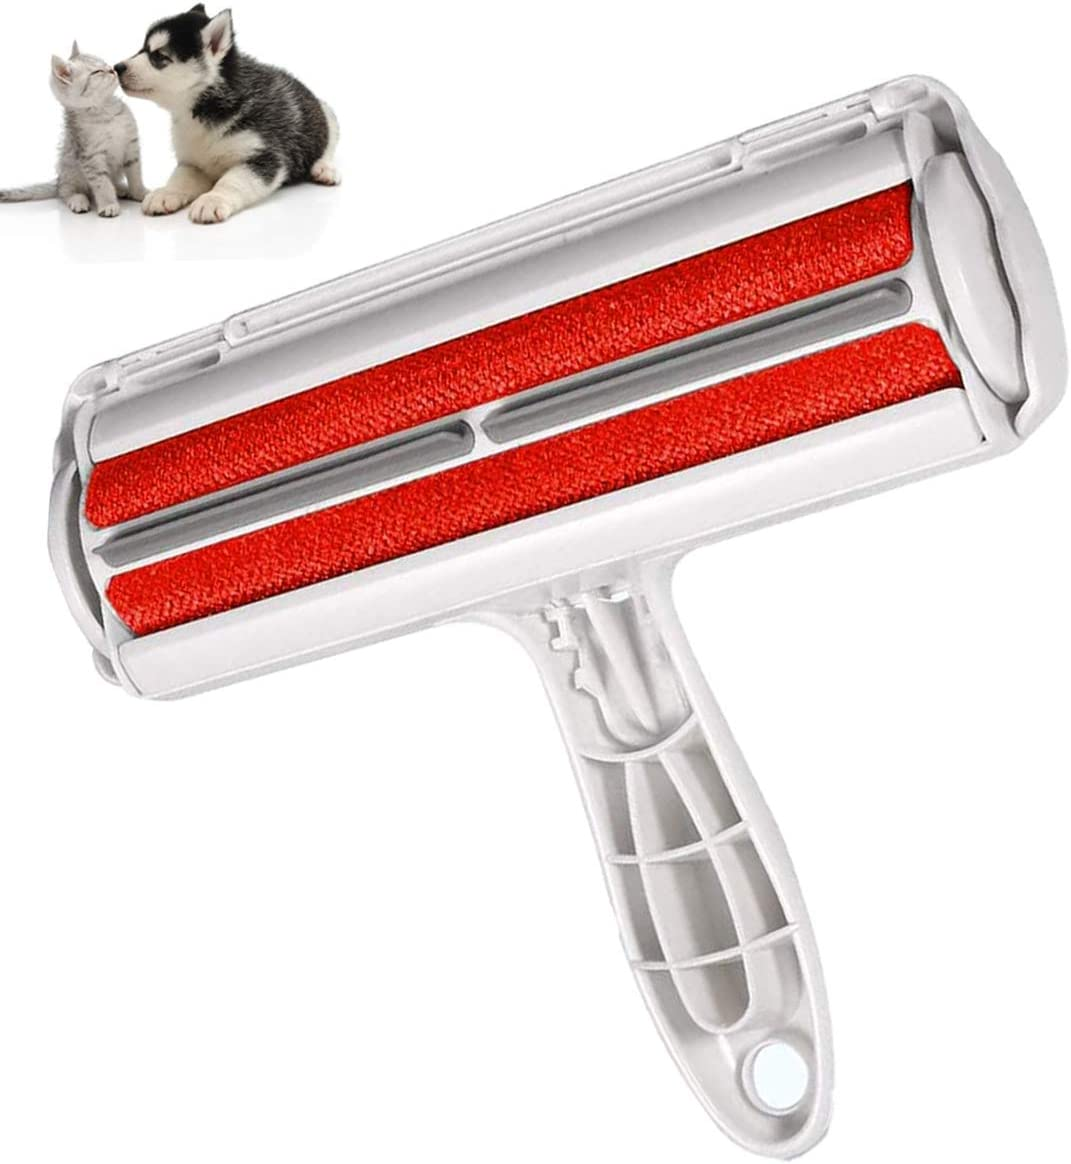 Lint Rollers, Cat Hair Remover Roller, Lint Roller No Adhesive or Sticky Tape Needed, Efficient Pet Hair Remover Tool, Self Cleaning Reusable Fur Remover from Furniture Couch Carpet Bed Cloth(Red)